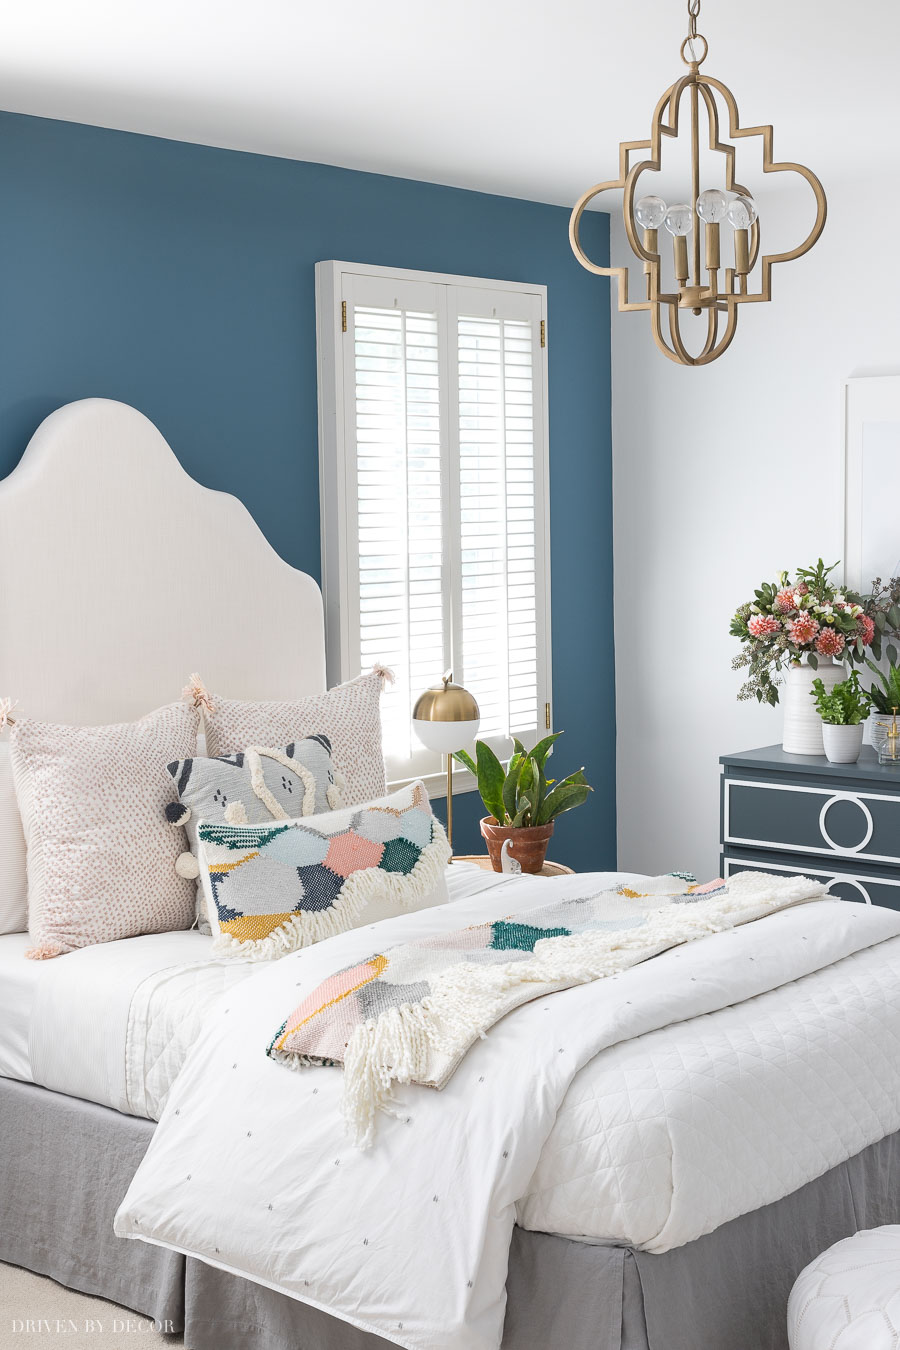 Colorful boho chic teen bedroom! All paint colors and sources included in the post!